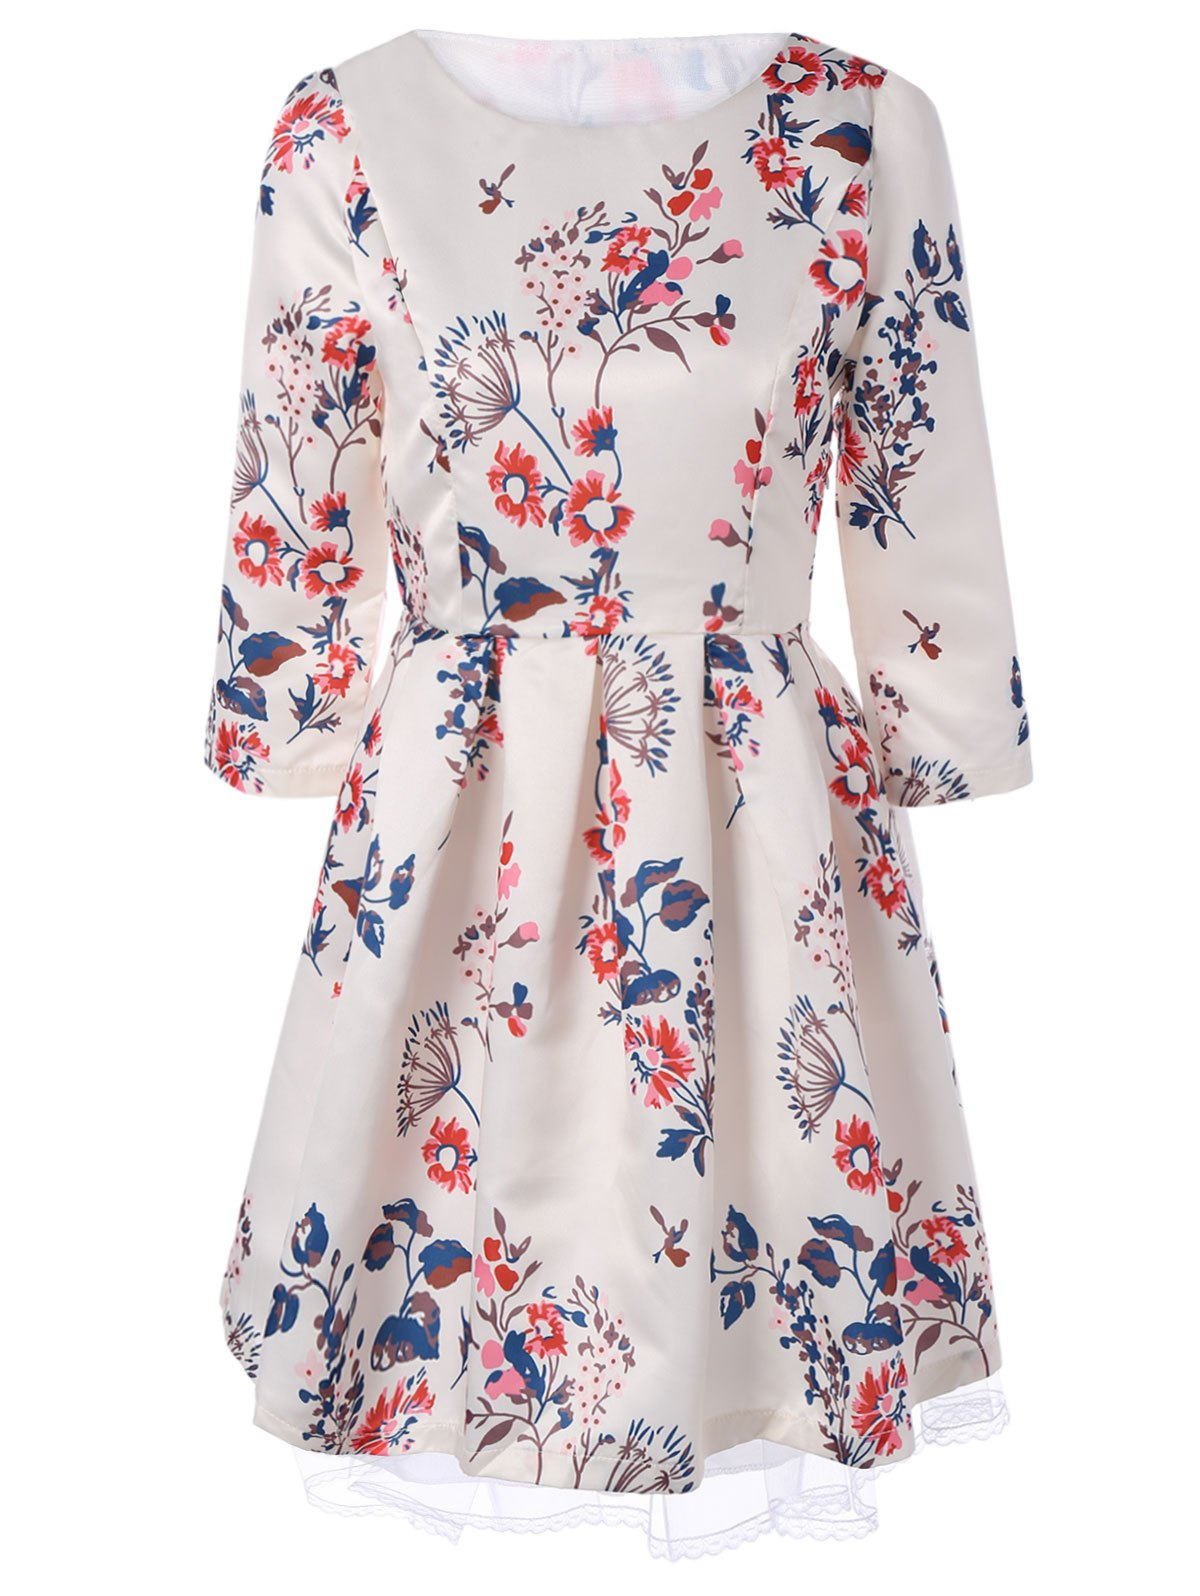 Retro Round Neck Floral Printed 3/4 Sleeve Fit and Flare Dress